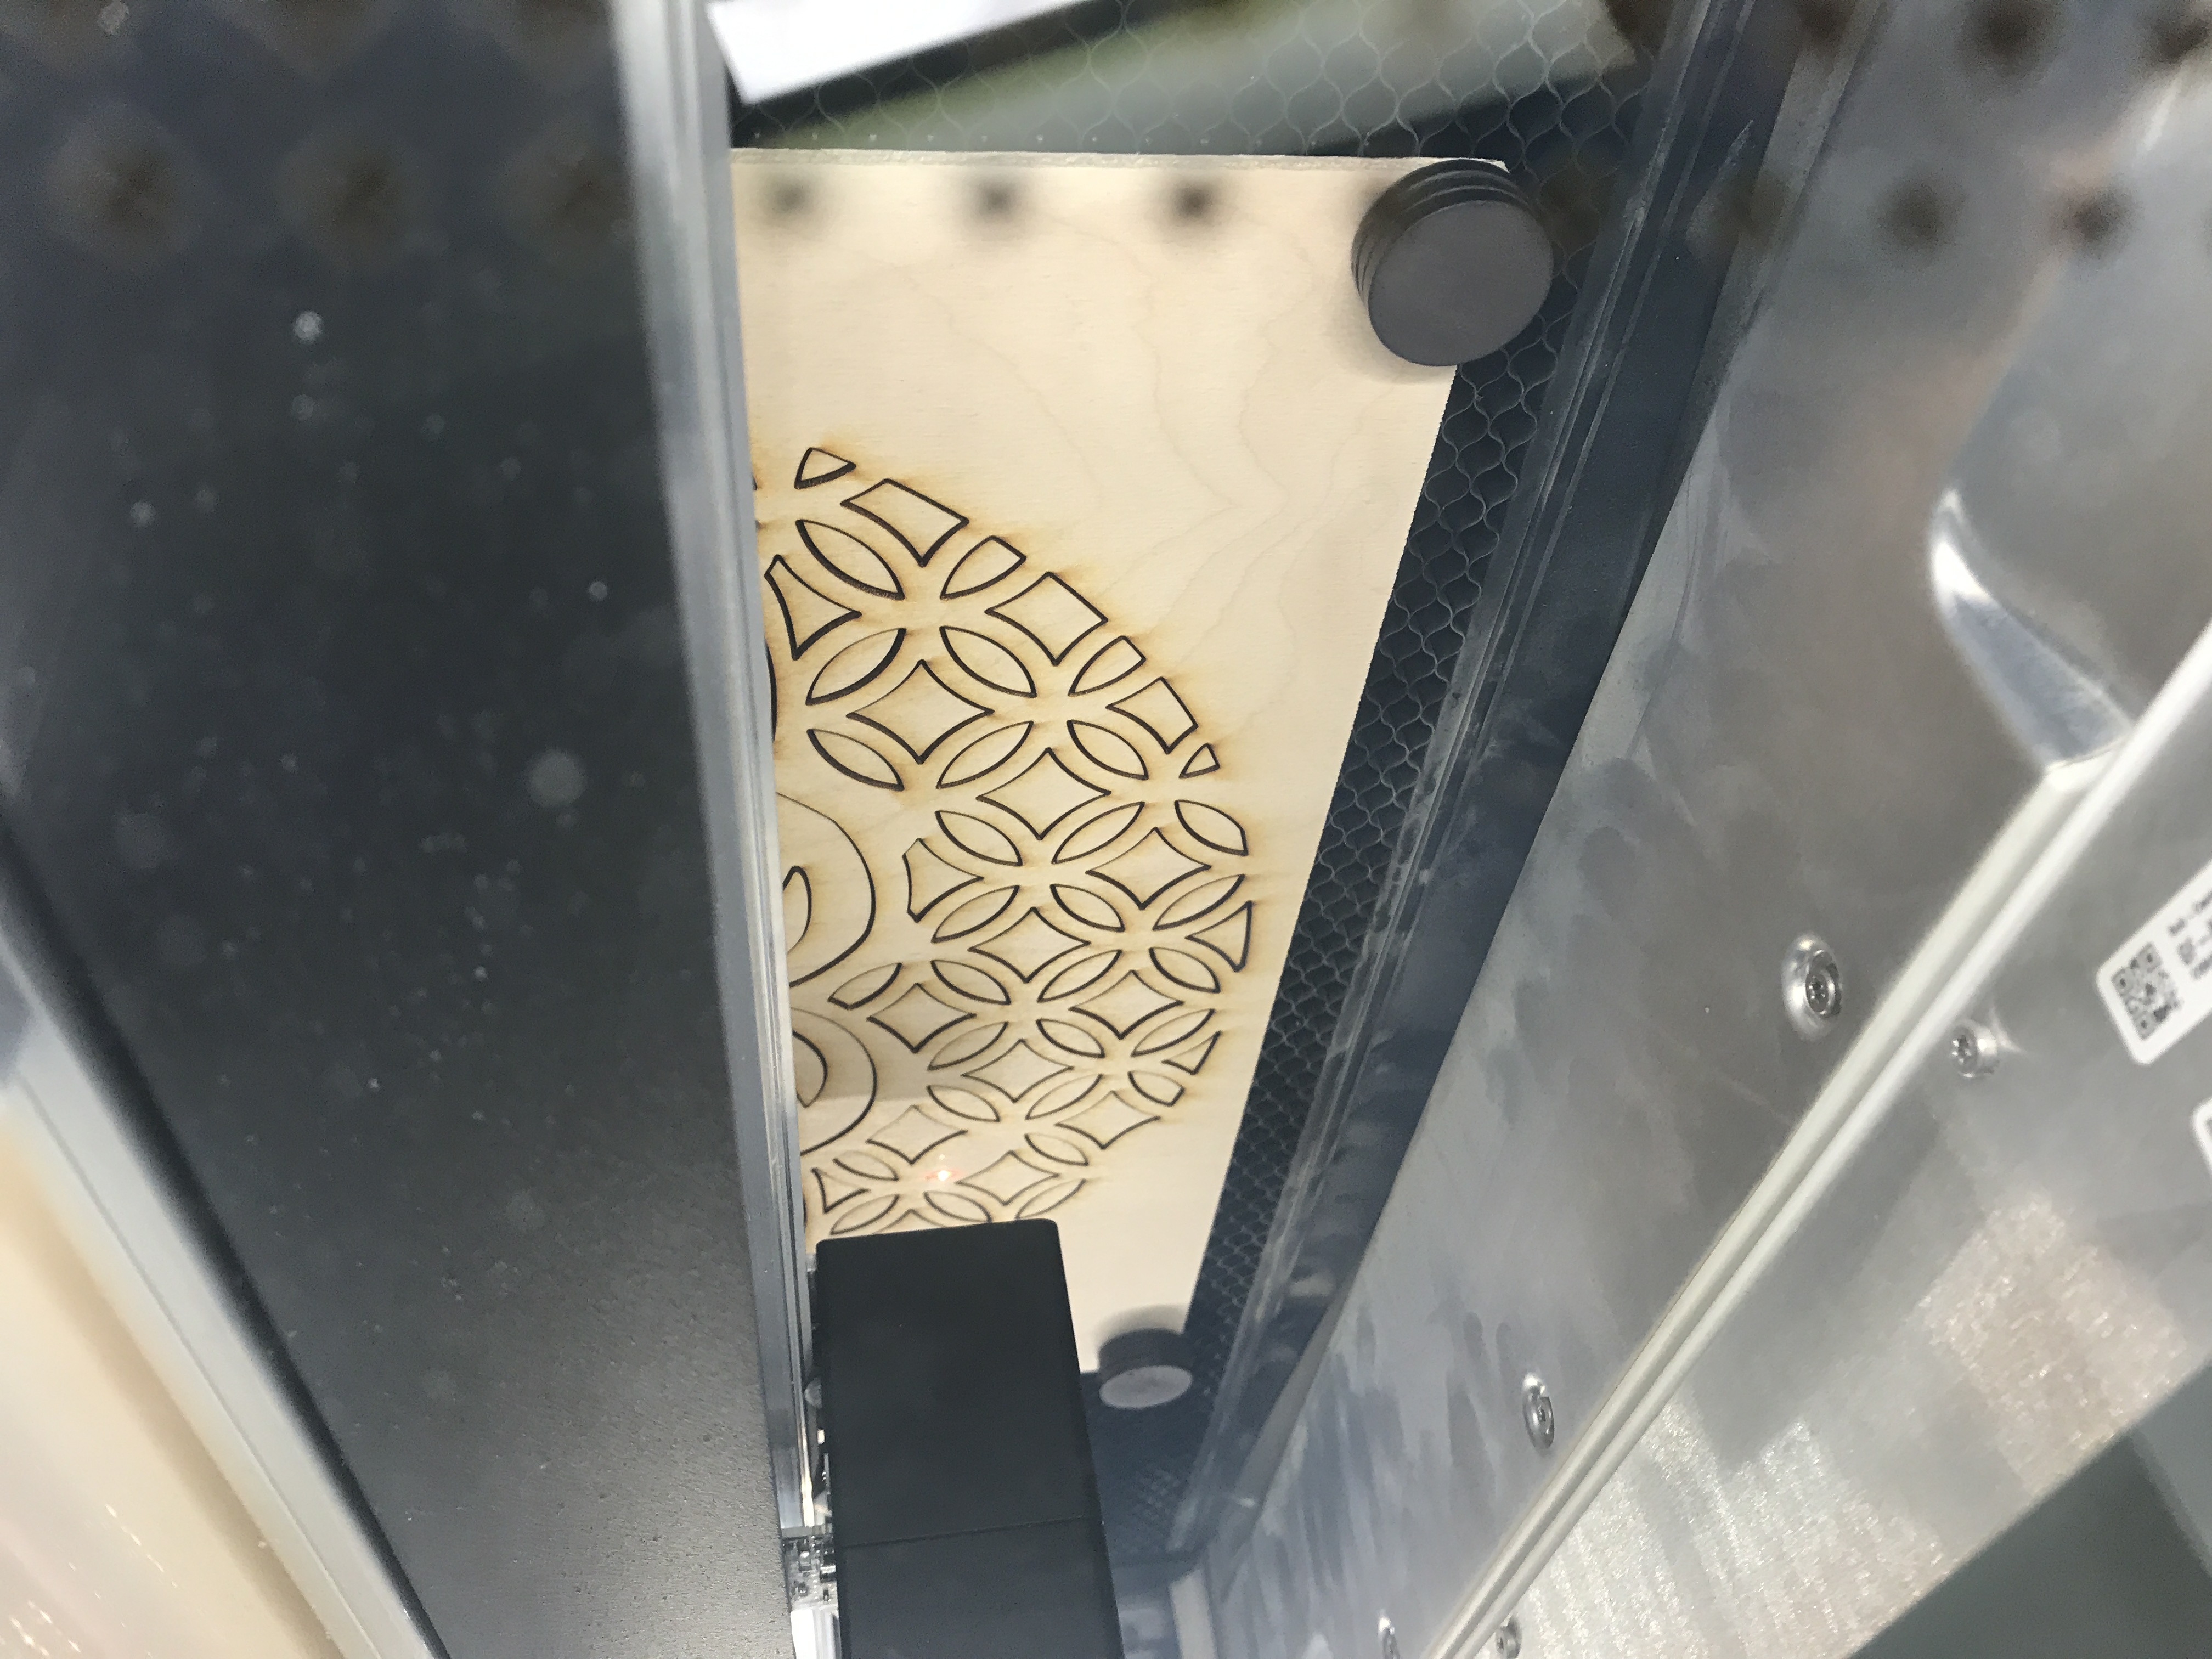 Glowforge in action